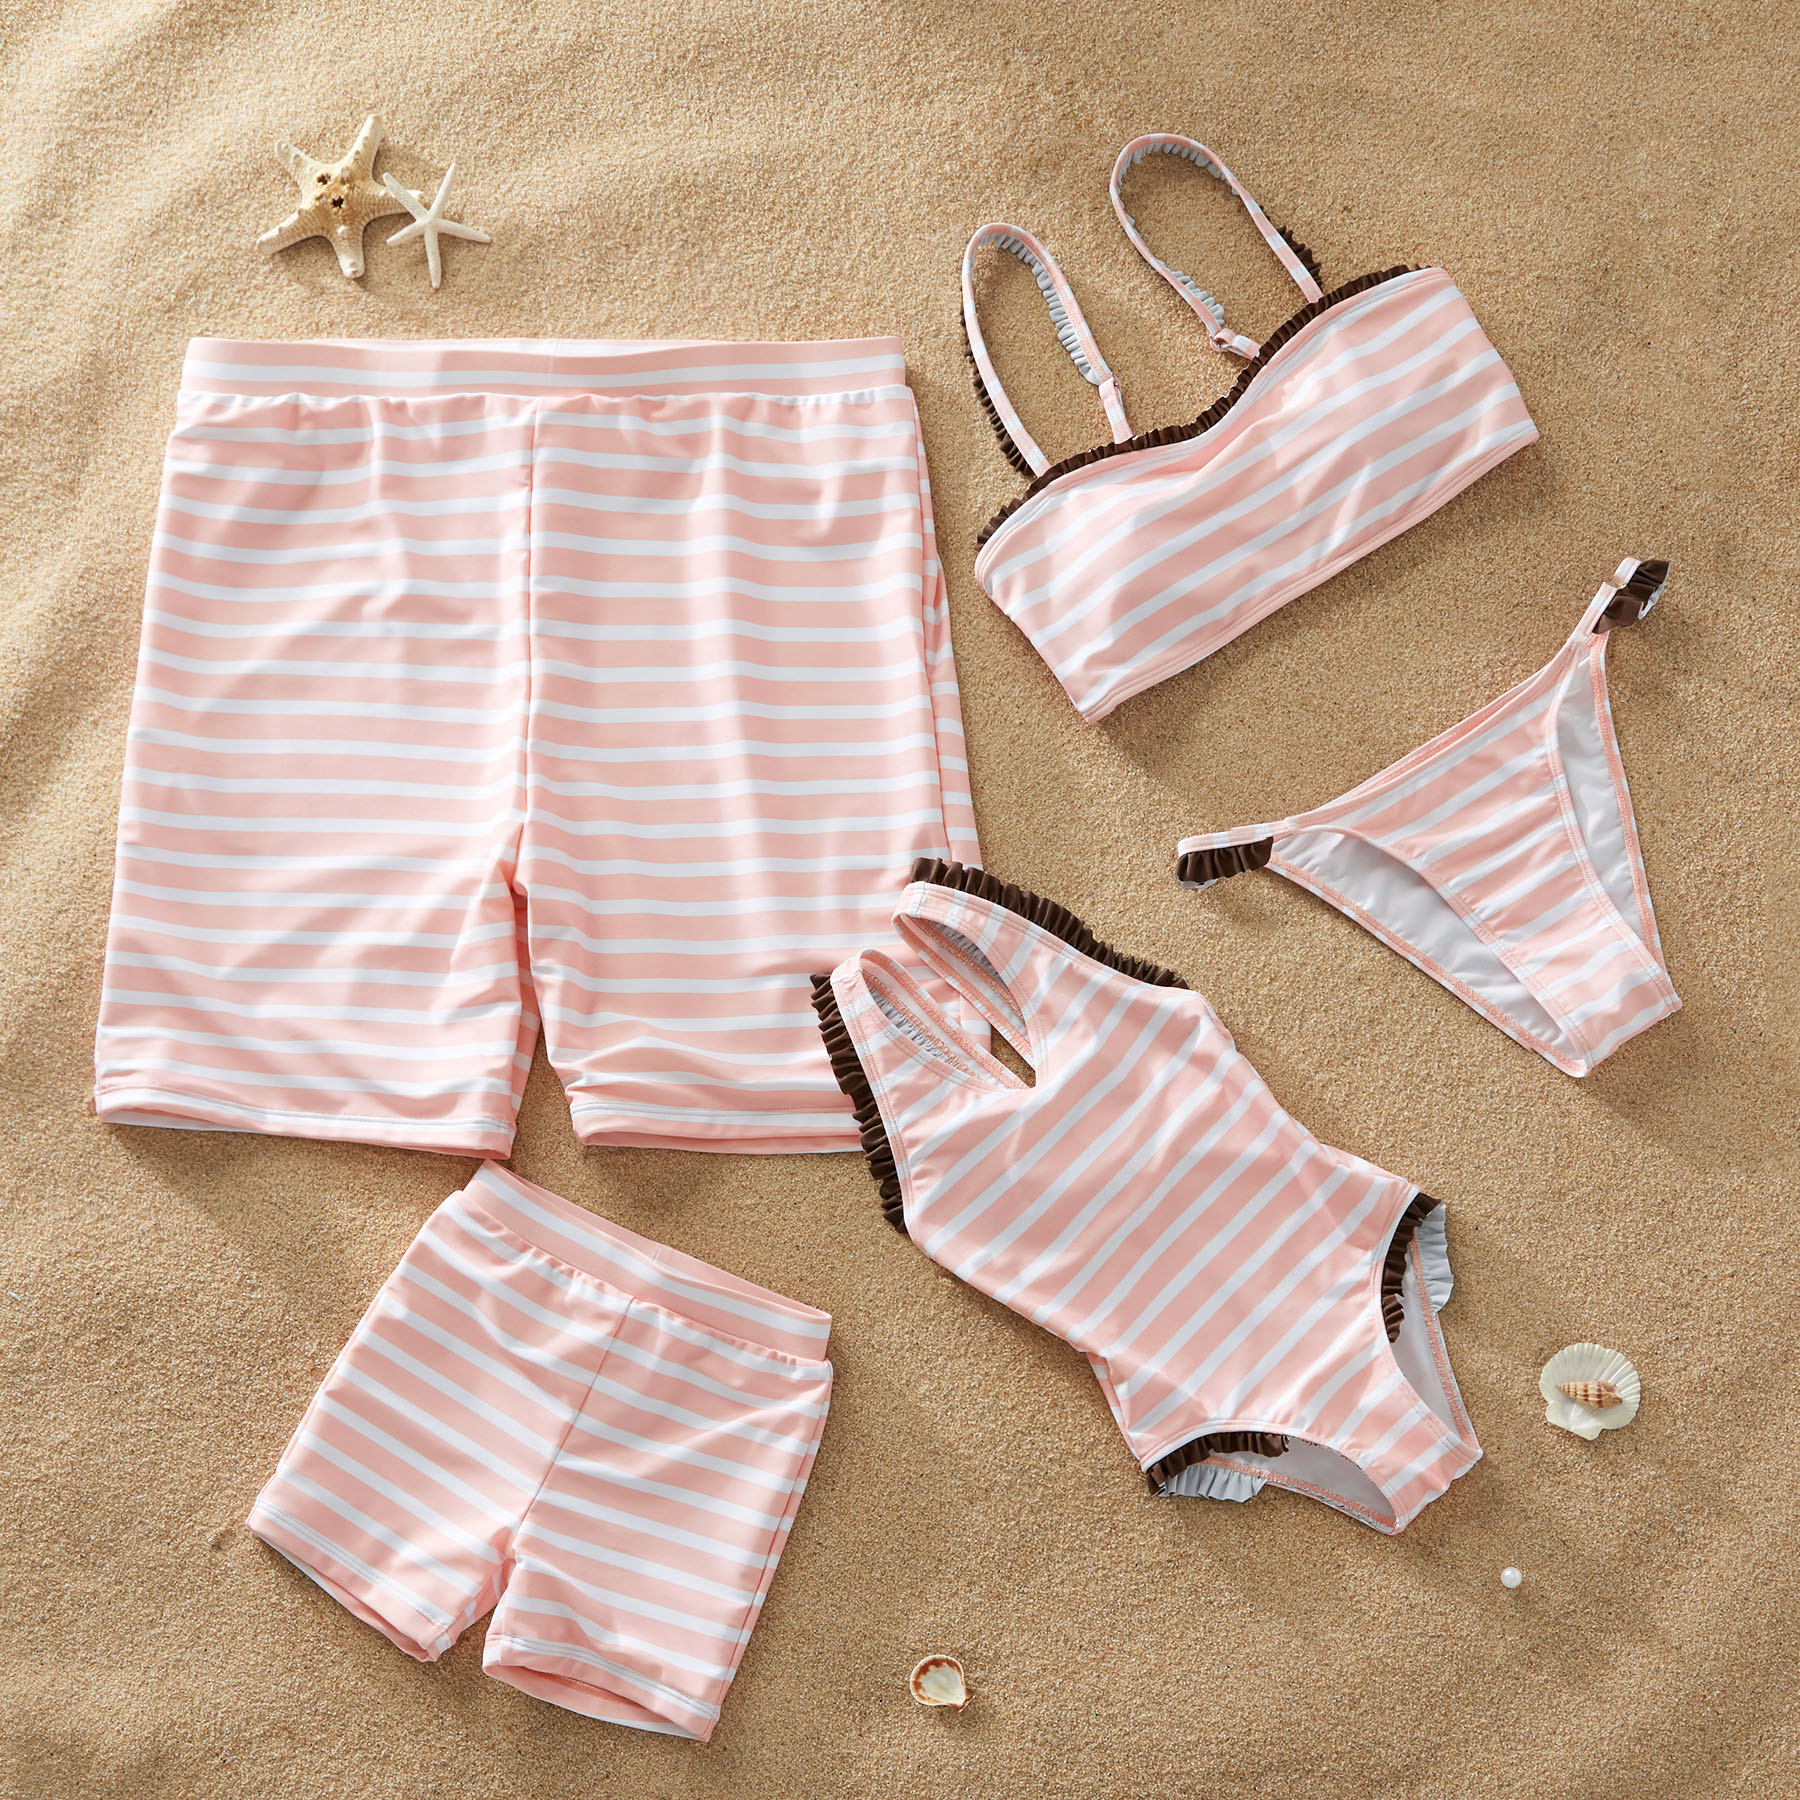 Strip 2-Piece Matching Swimsuit for Family